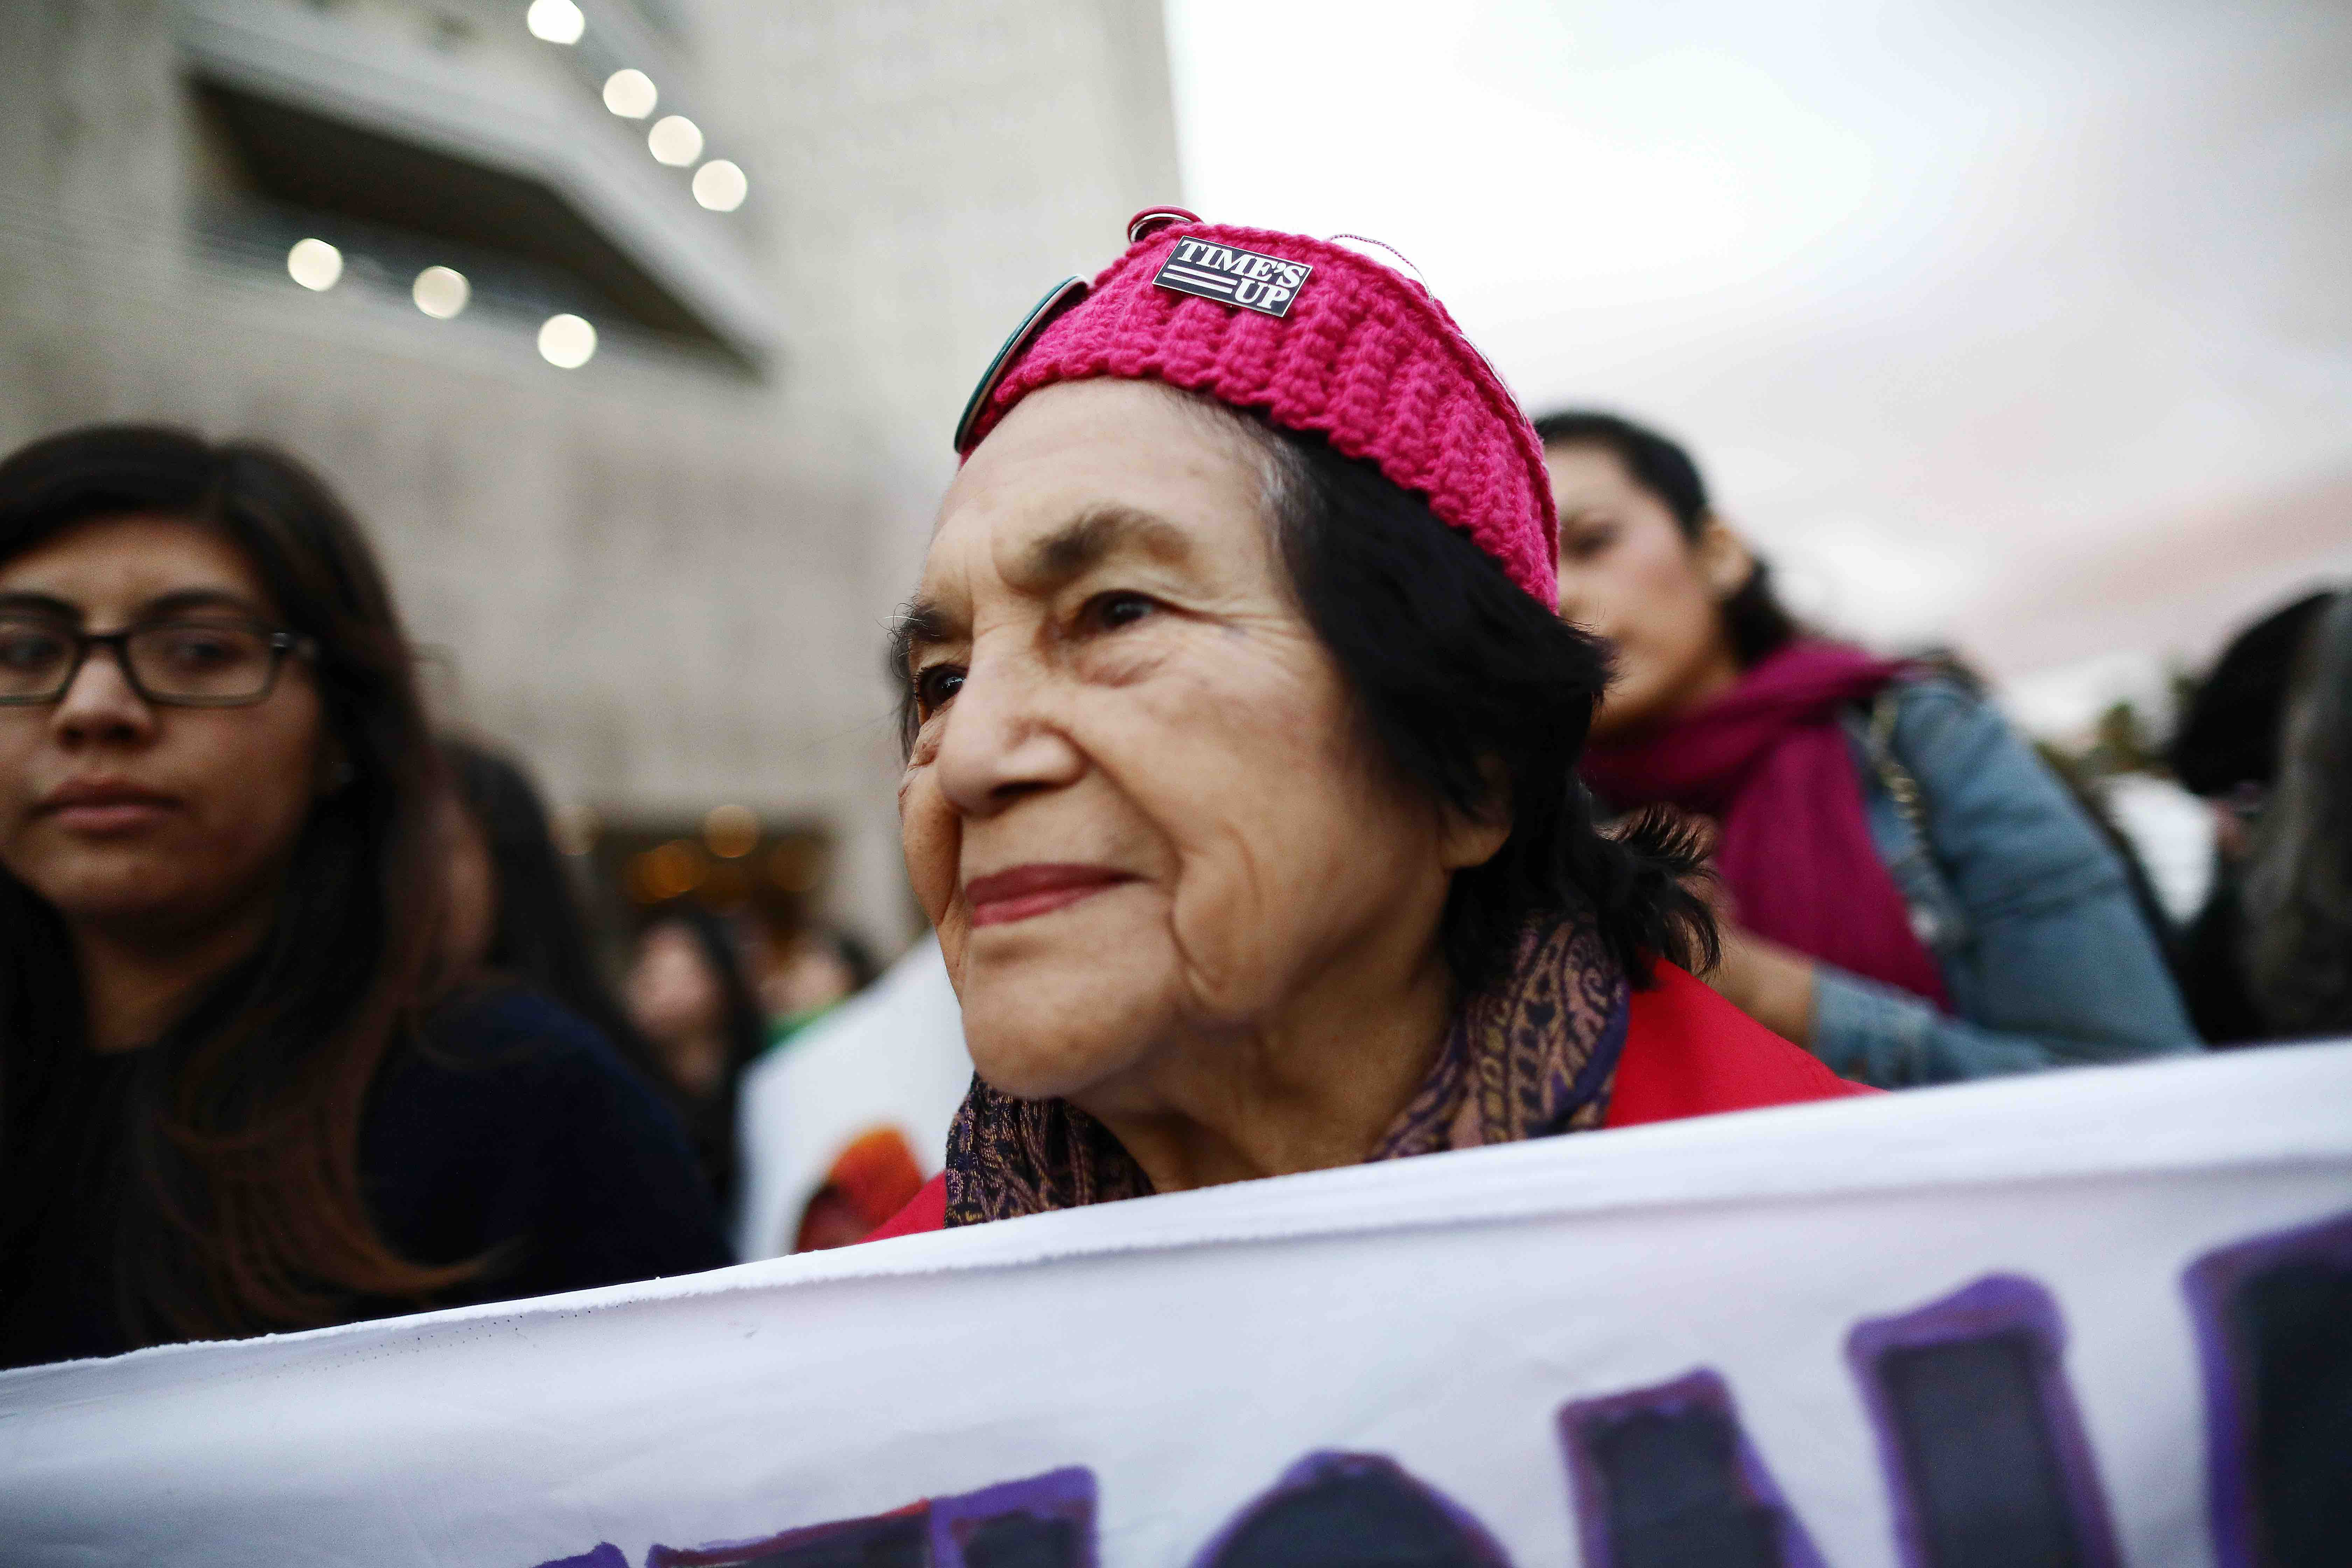 One of the Busiest Roads in Albuquerque Will Soon Be Renamed After Activist Dolores Huerta